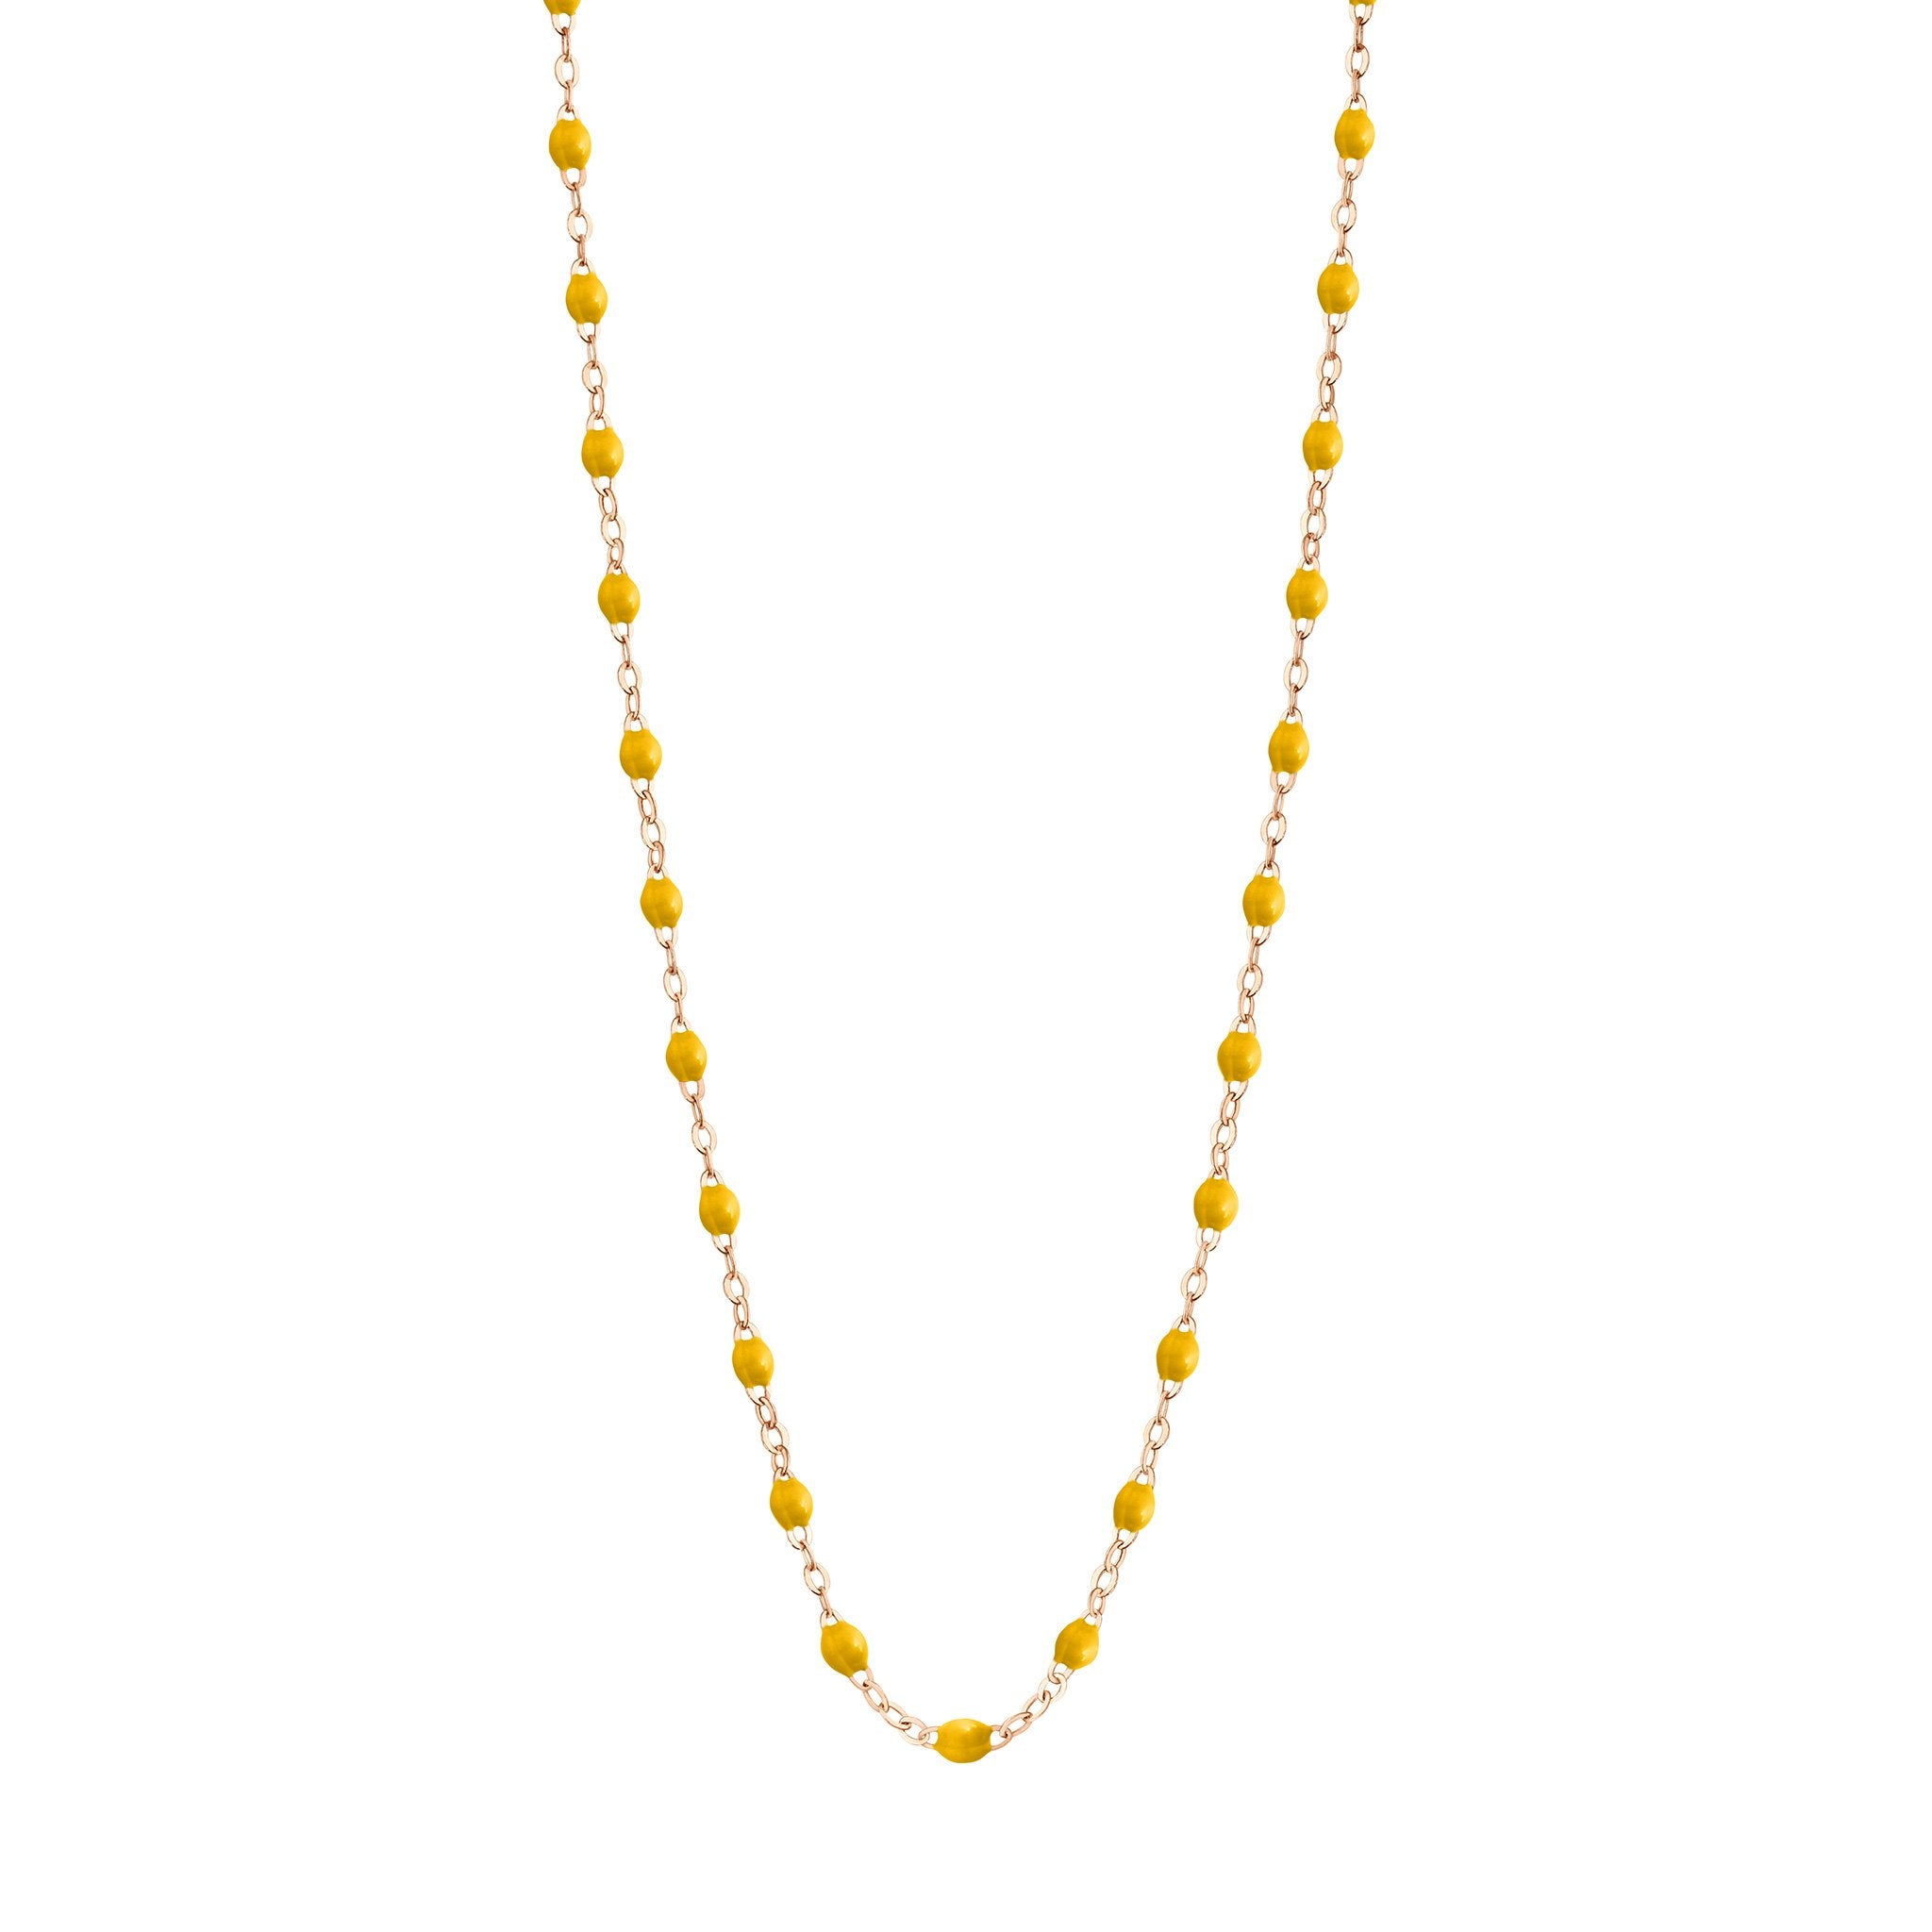 Gigi Clozeau - Classic Gigi Yellow necklace, Rose Gold, 16.5